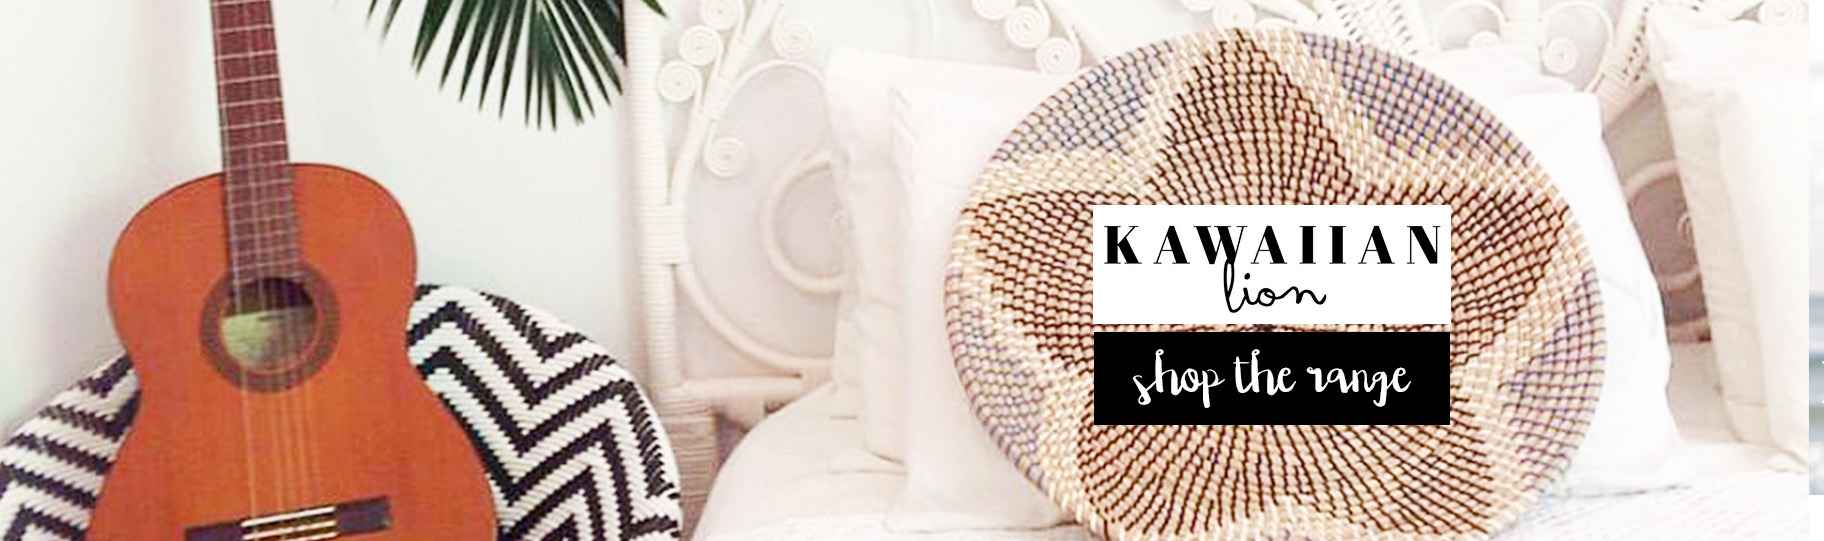 eclectic style homewares